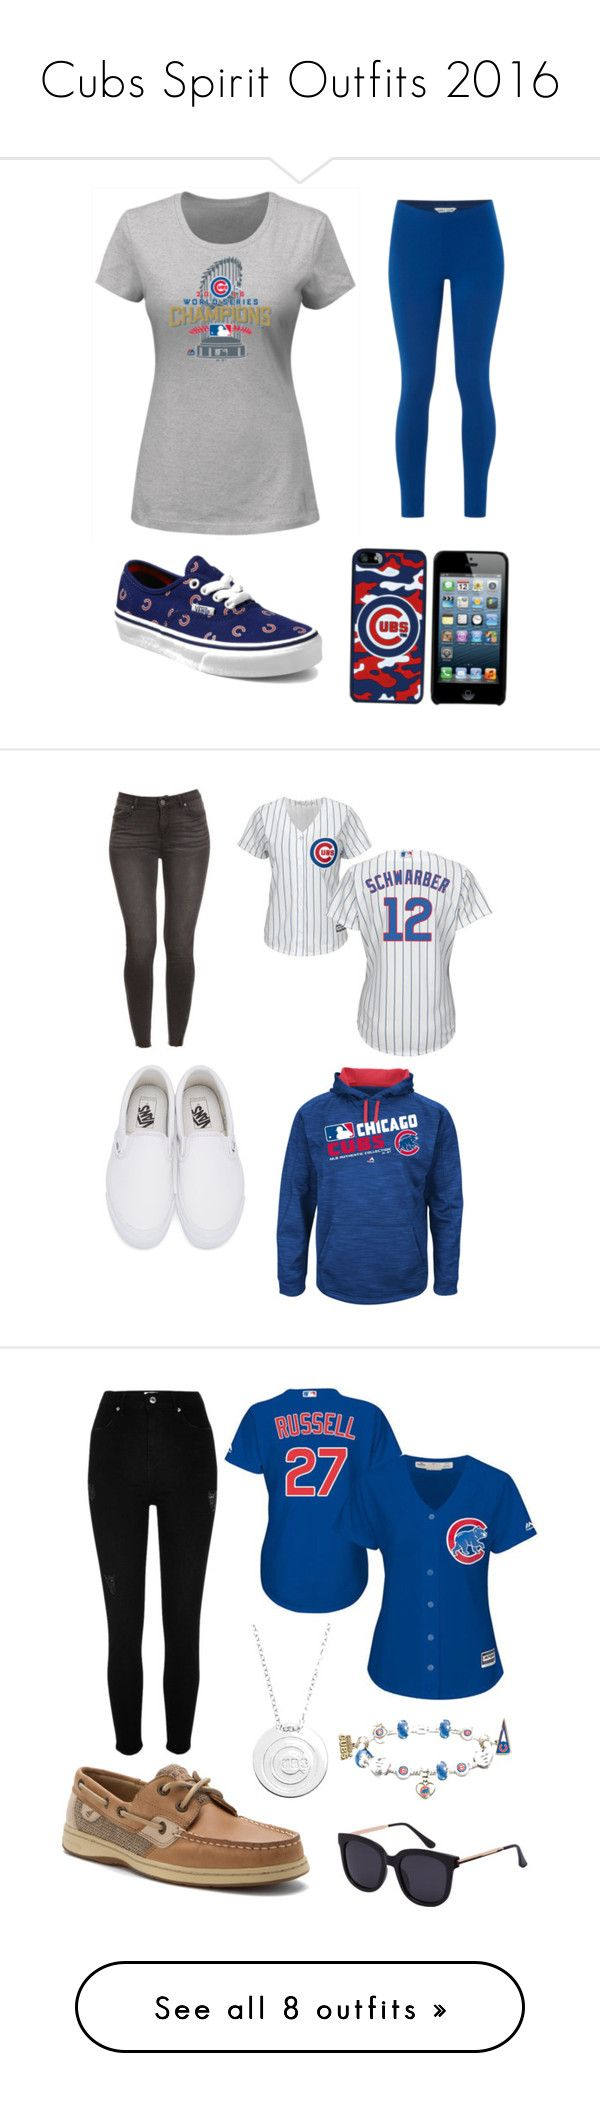 """""""Cubs Spirit Outfits 2016"""" by sprinkles101 ❤ liked on Polyvore featuring Majestic, White Stuff, Vans, River Island, Sperry, The Bradford Exchange, NIKE, Stitches, UGG and New Era"""